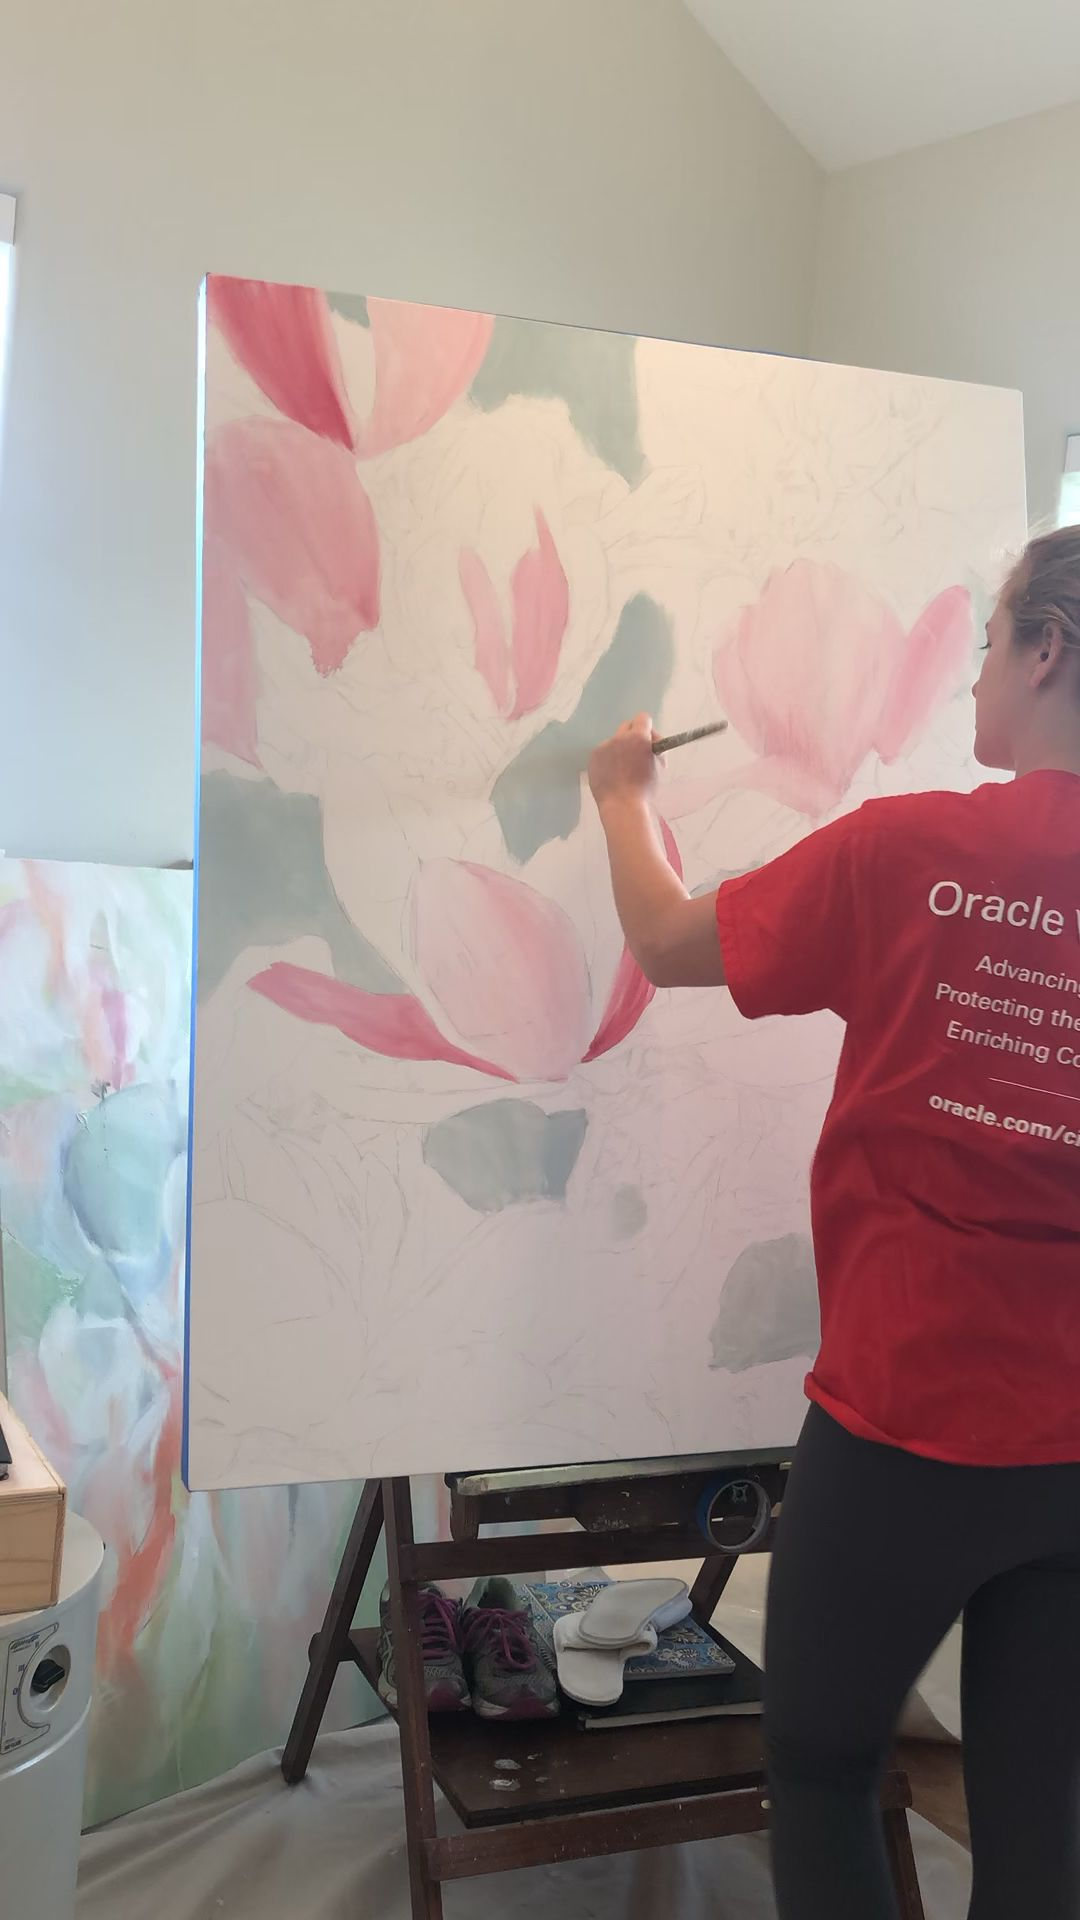 Artist, CoCo Zentner, shows how she paints her first layer of her paintings to help inspire other creatives and artists. To learn more about how to paint, visit her website or send her an email! #howtopaint #artist #oilpainting  #flowerpainting